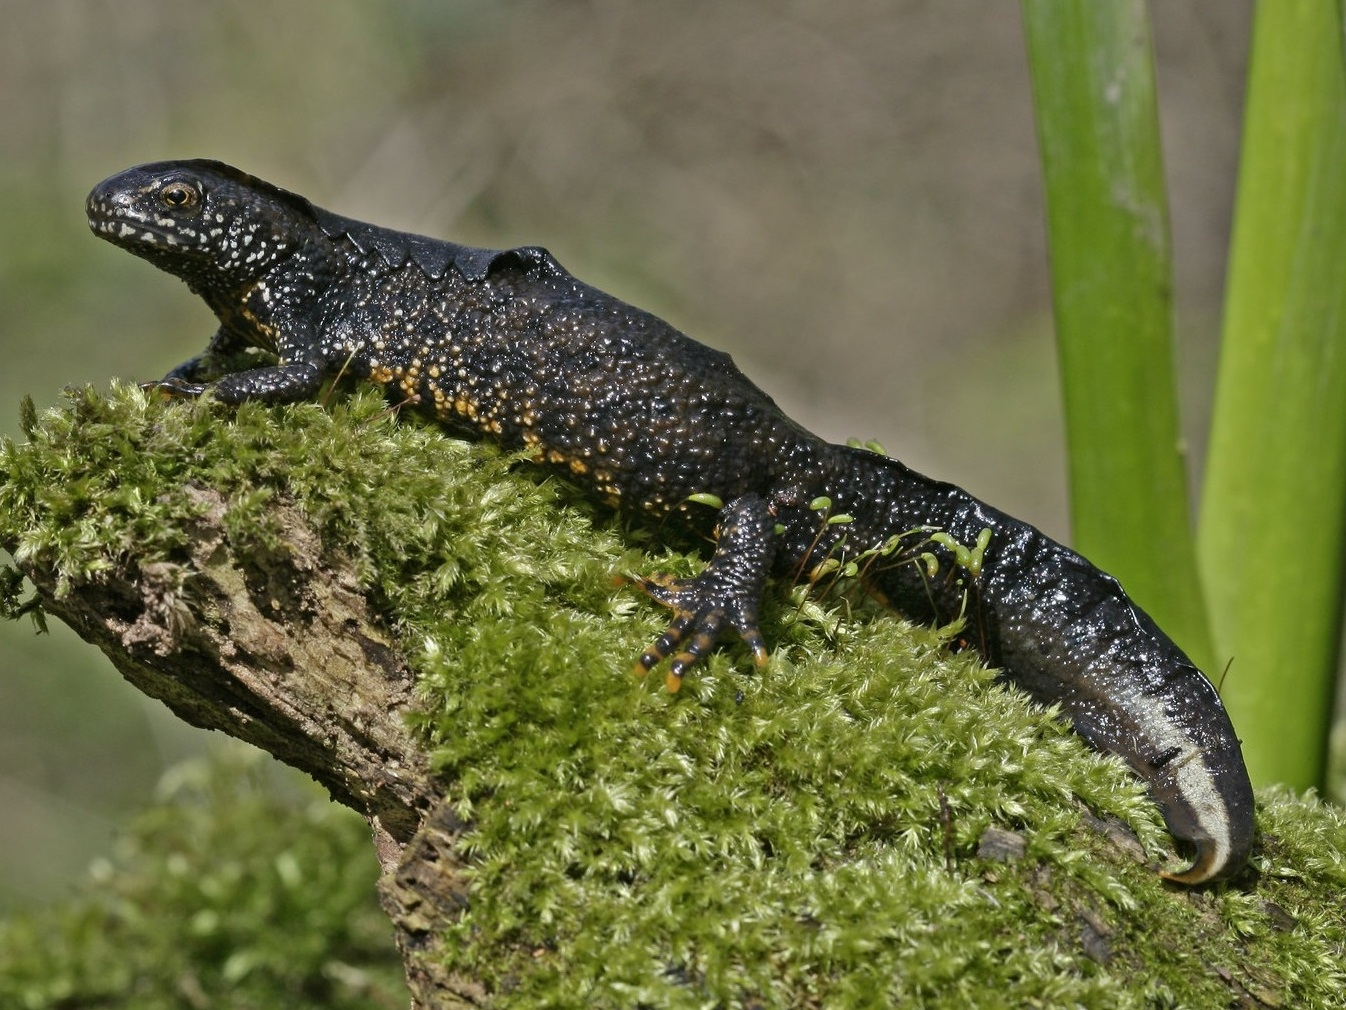 Great Crested Newts (GCN) -